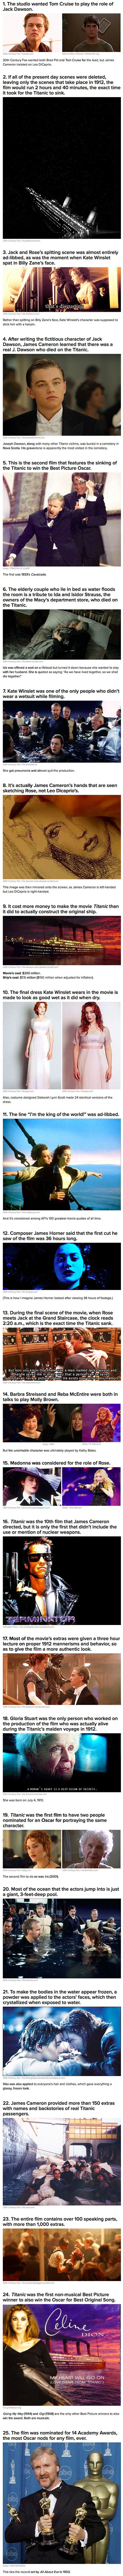 Some very interesting facts you may want to know if you're a fan of the movie Titanic, starring Leonardo DiCaprio, Kate Winslet and hundreds more! -PurpleCloud474